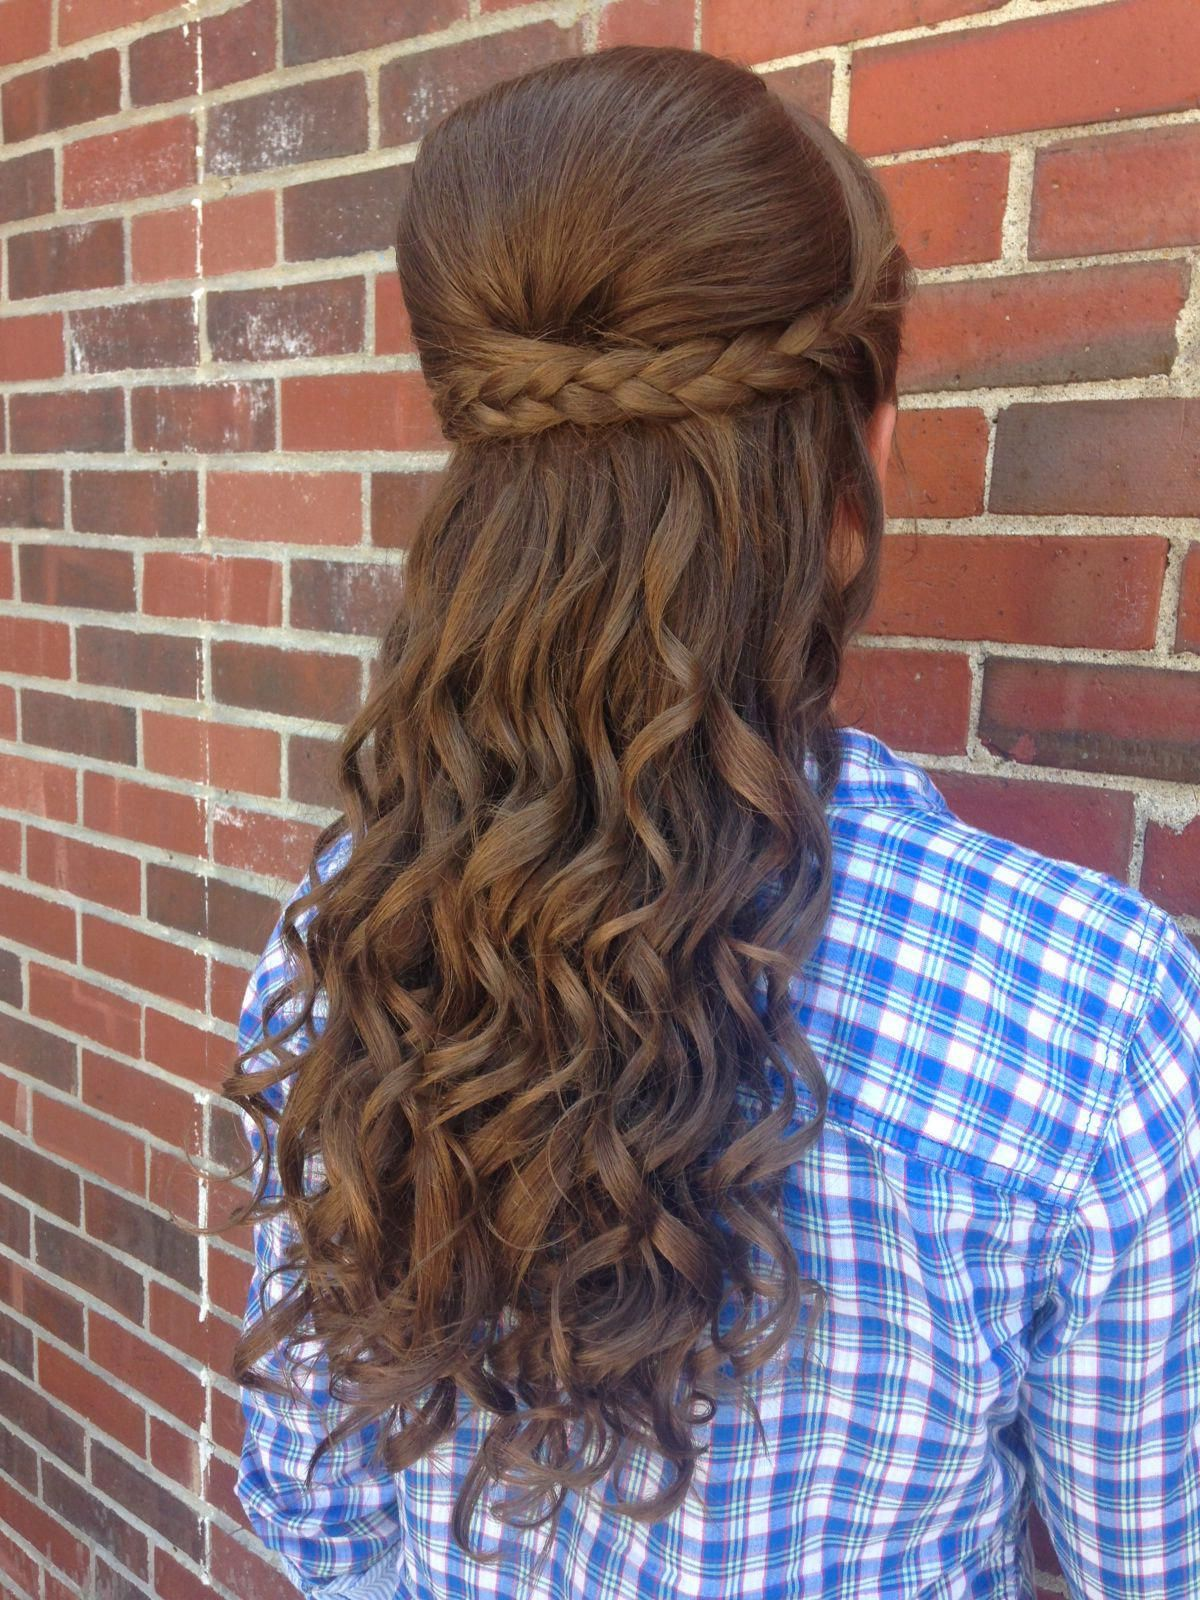 prom hair * half up half down * curly braided bump romantic